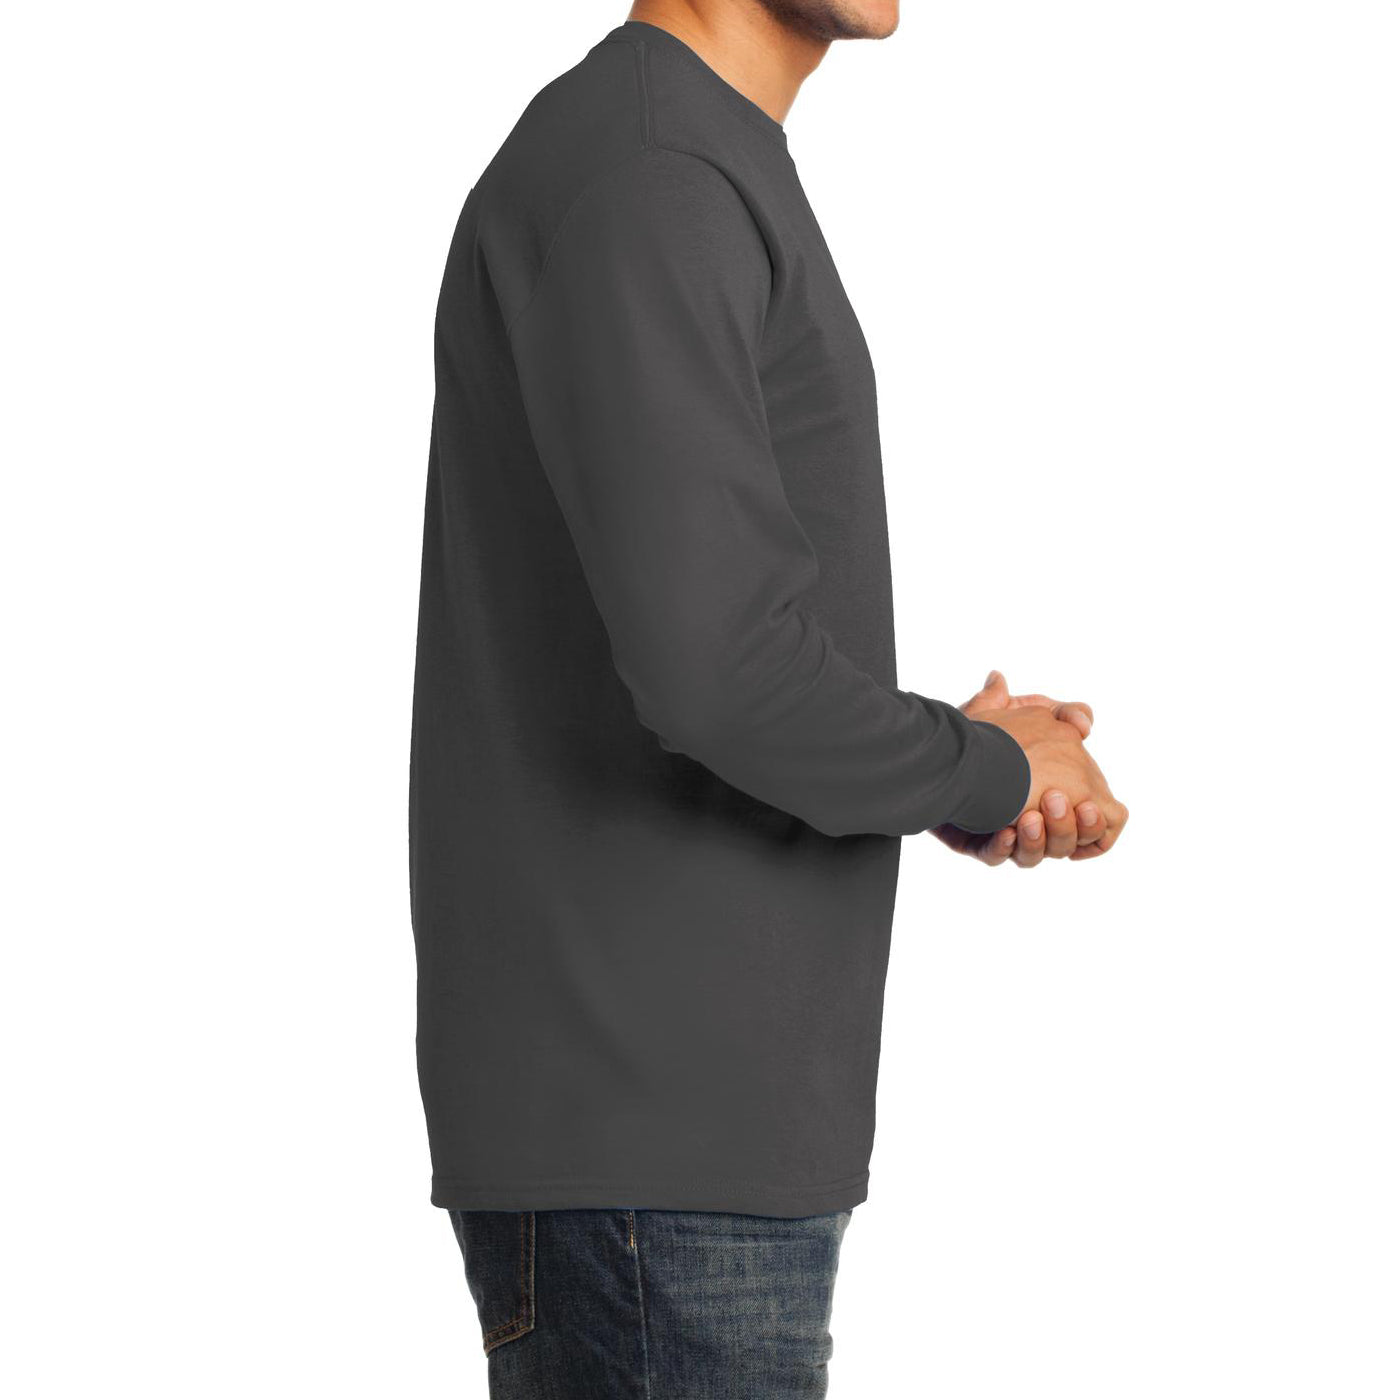 Men's Long Sleeve Essential Tee - Charcoal - Side